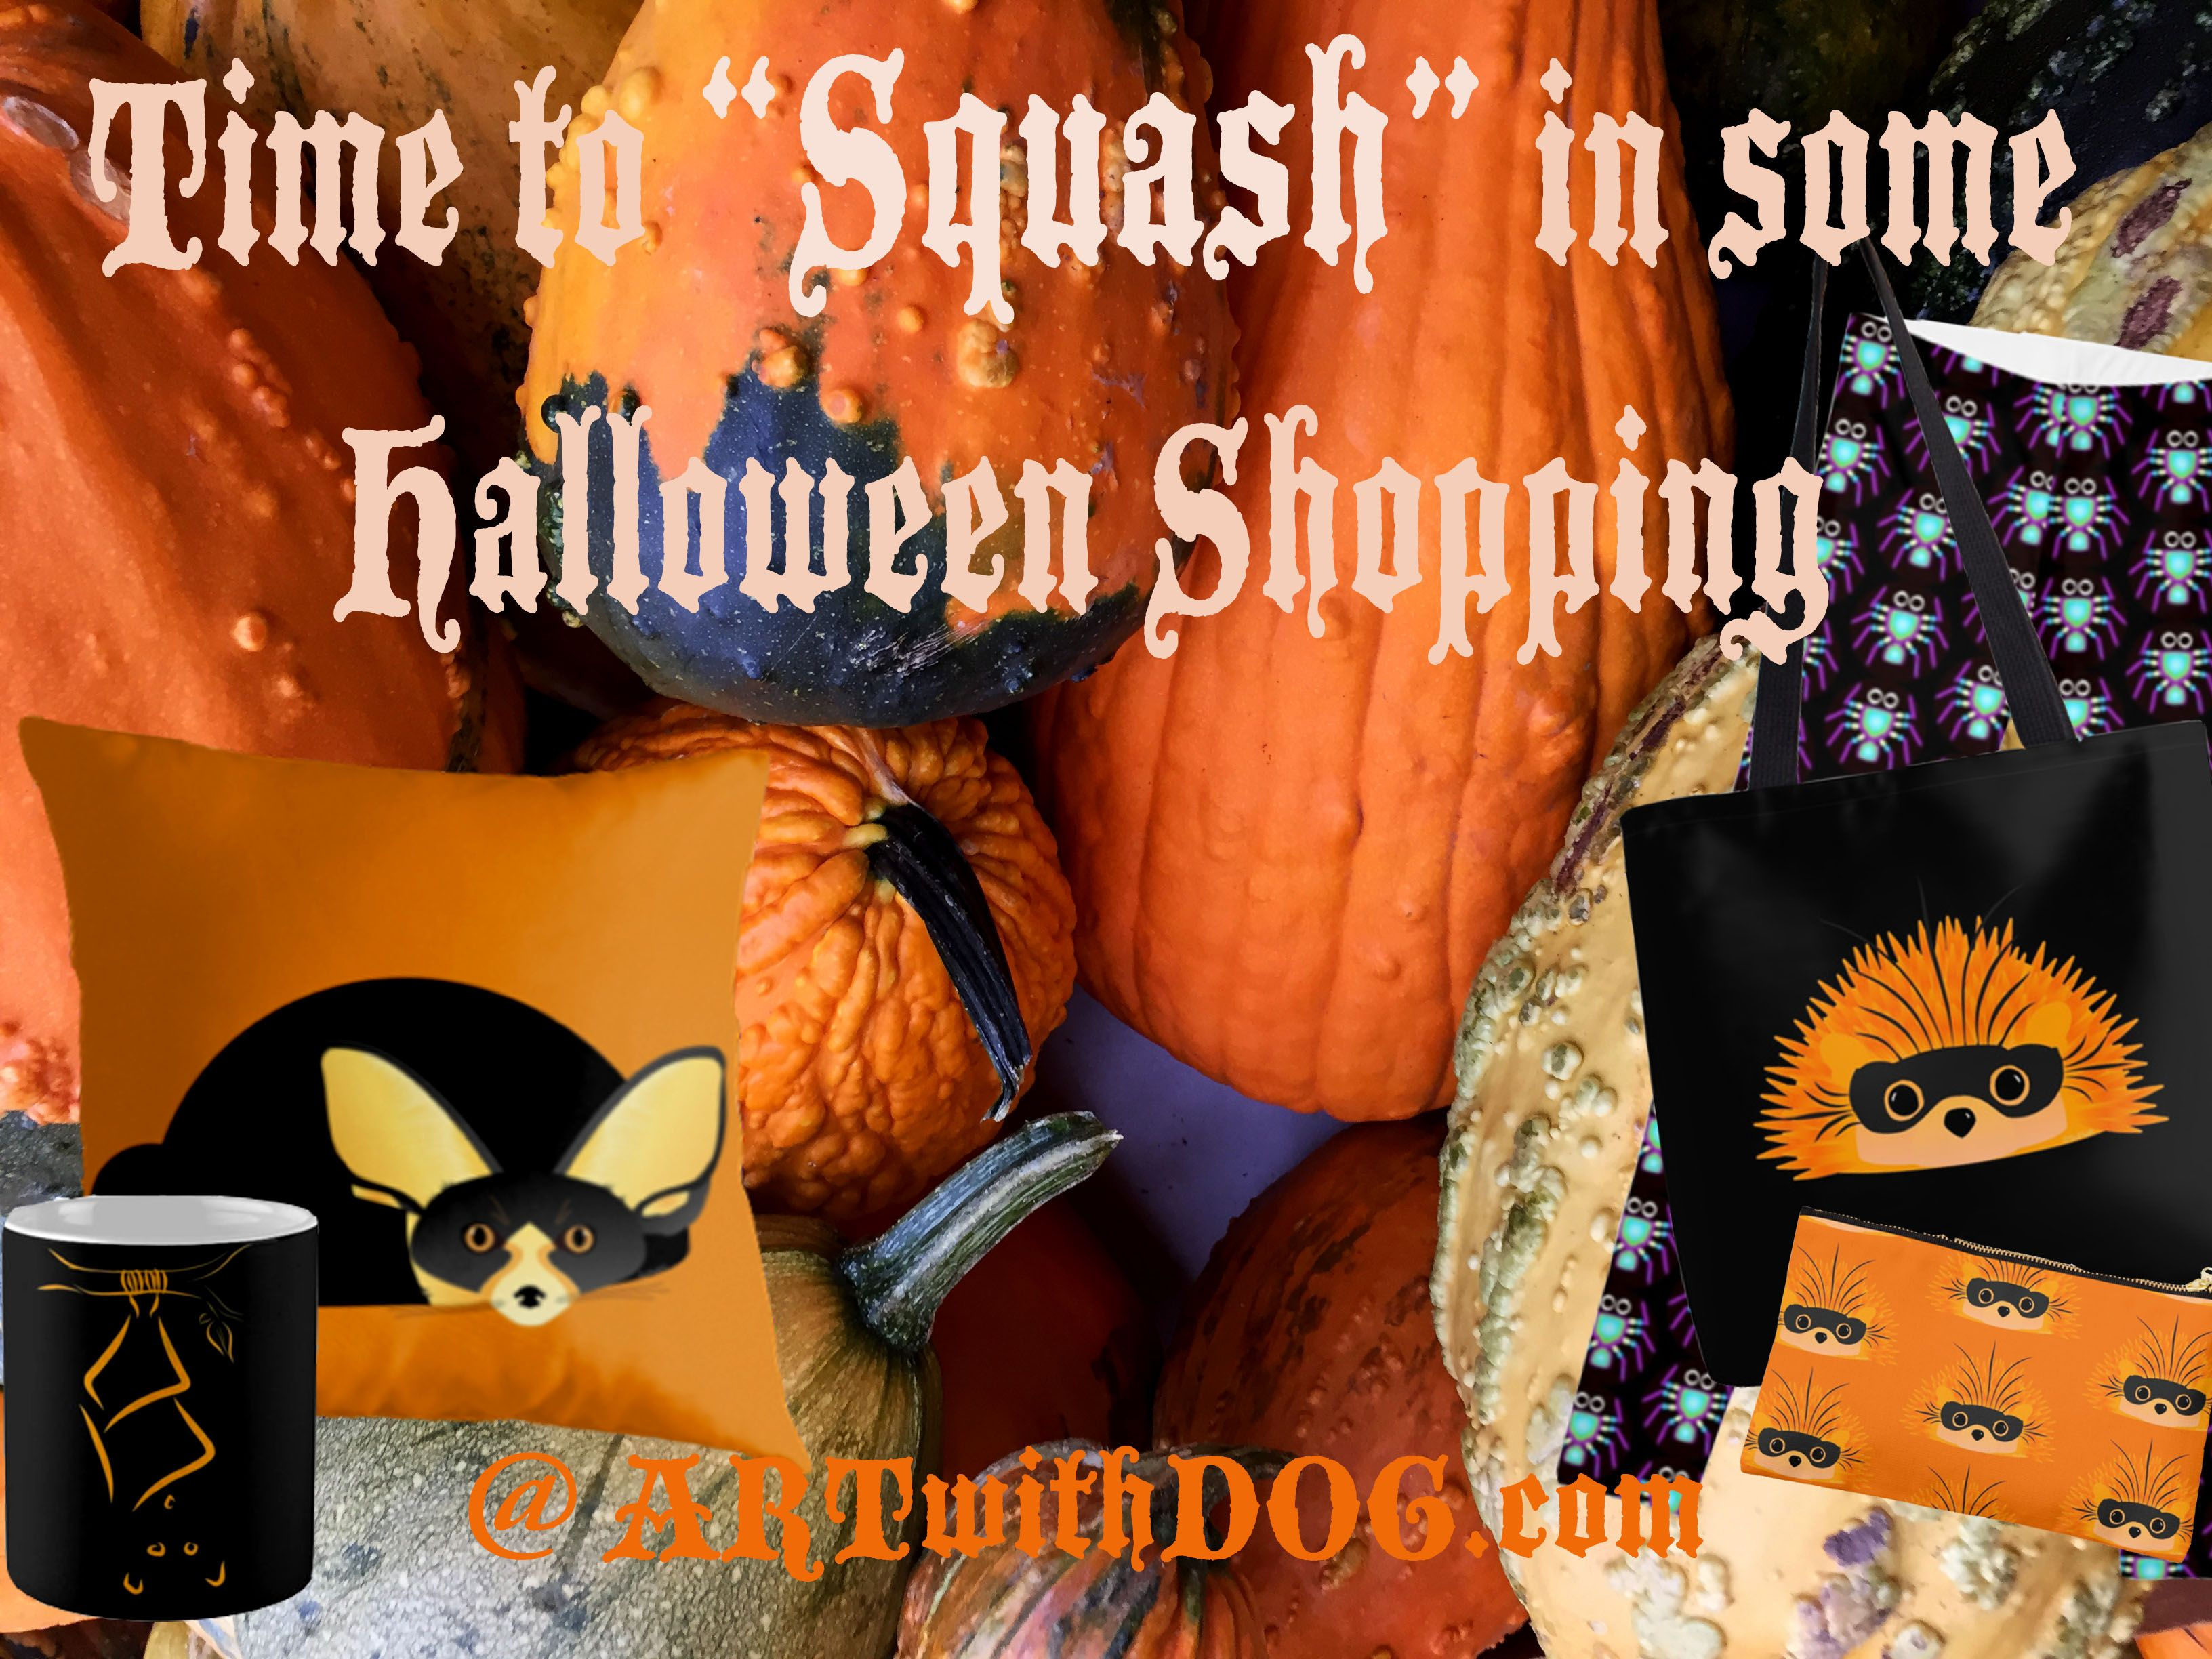 Halloween Is Fast Approaching, Be Ready For The Fun! @ ARTwithDOG.com #